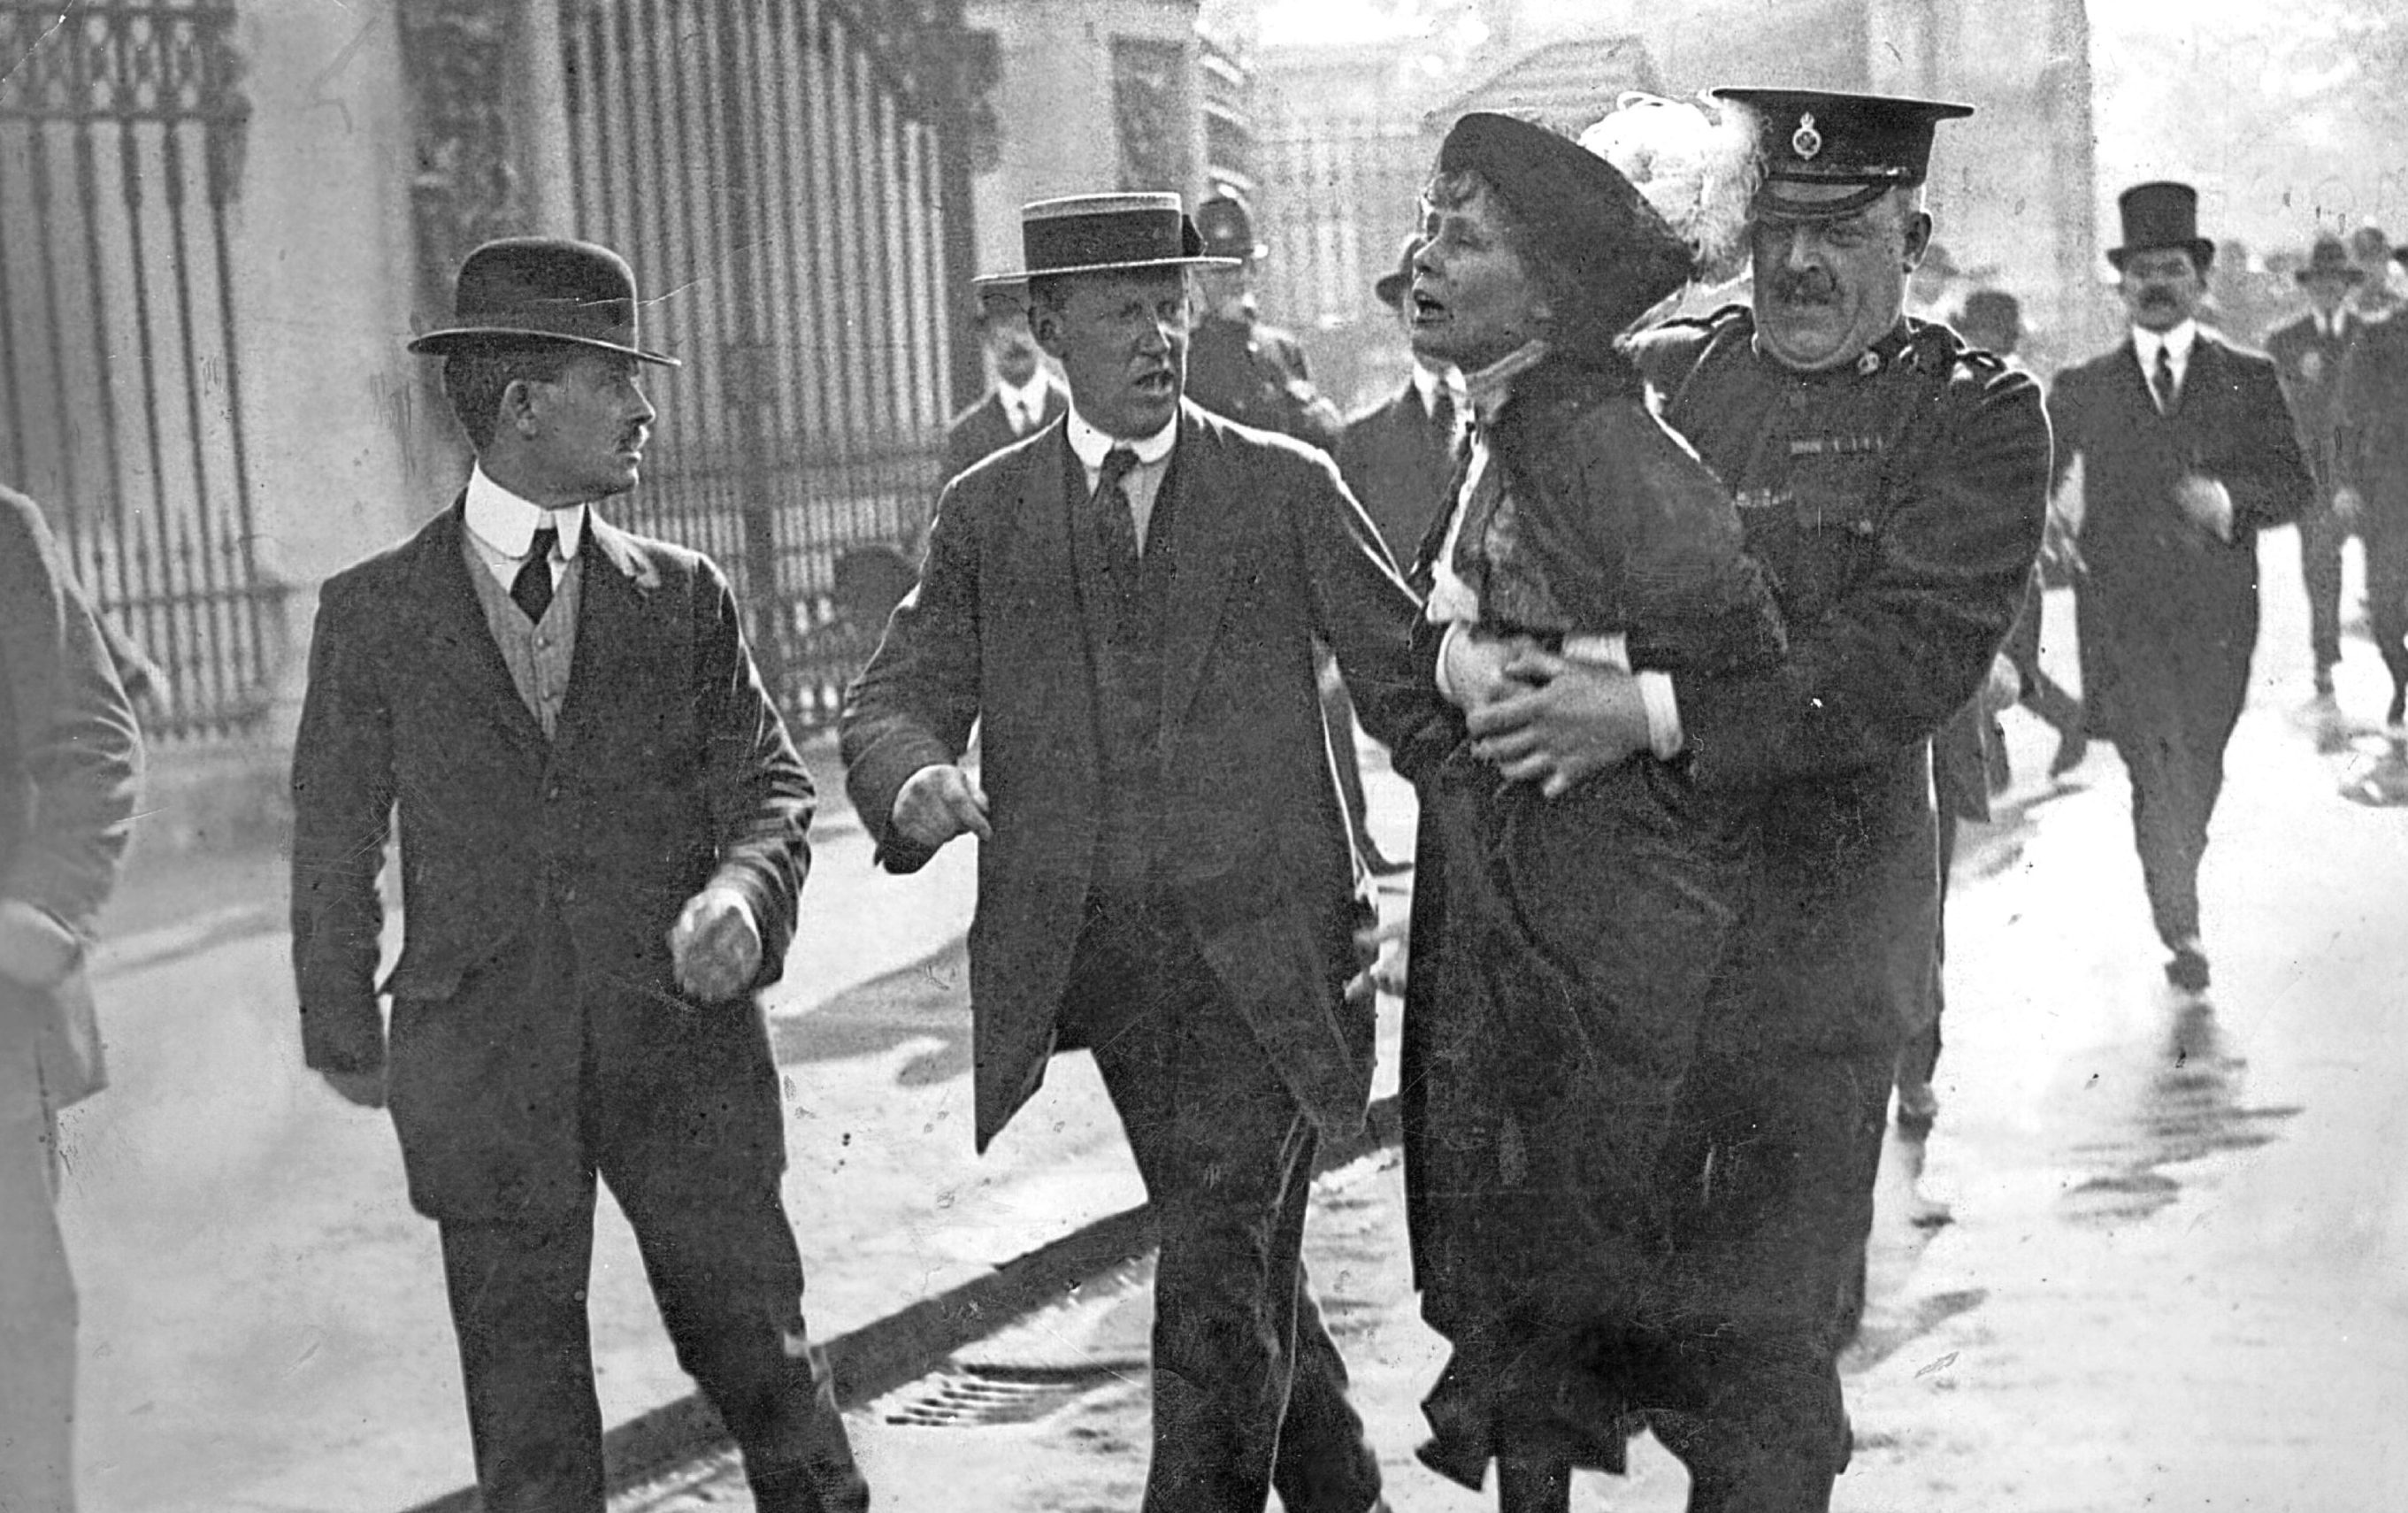 Emmeline Pankhurst is arrested and carried away at a march (Jimmy Sime/Central Press/Hulton Archive/Getty Images)